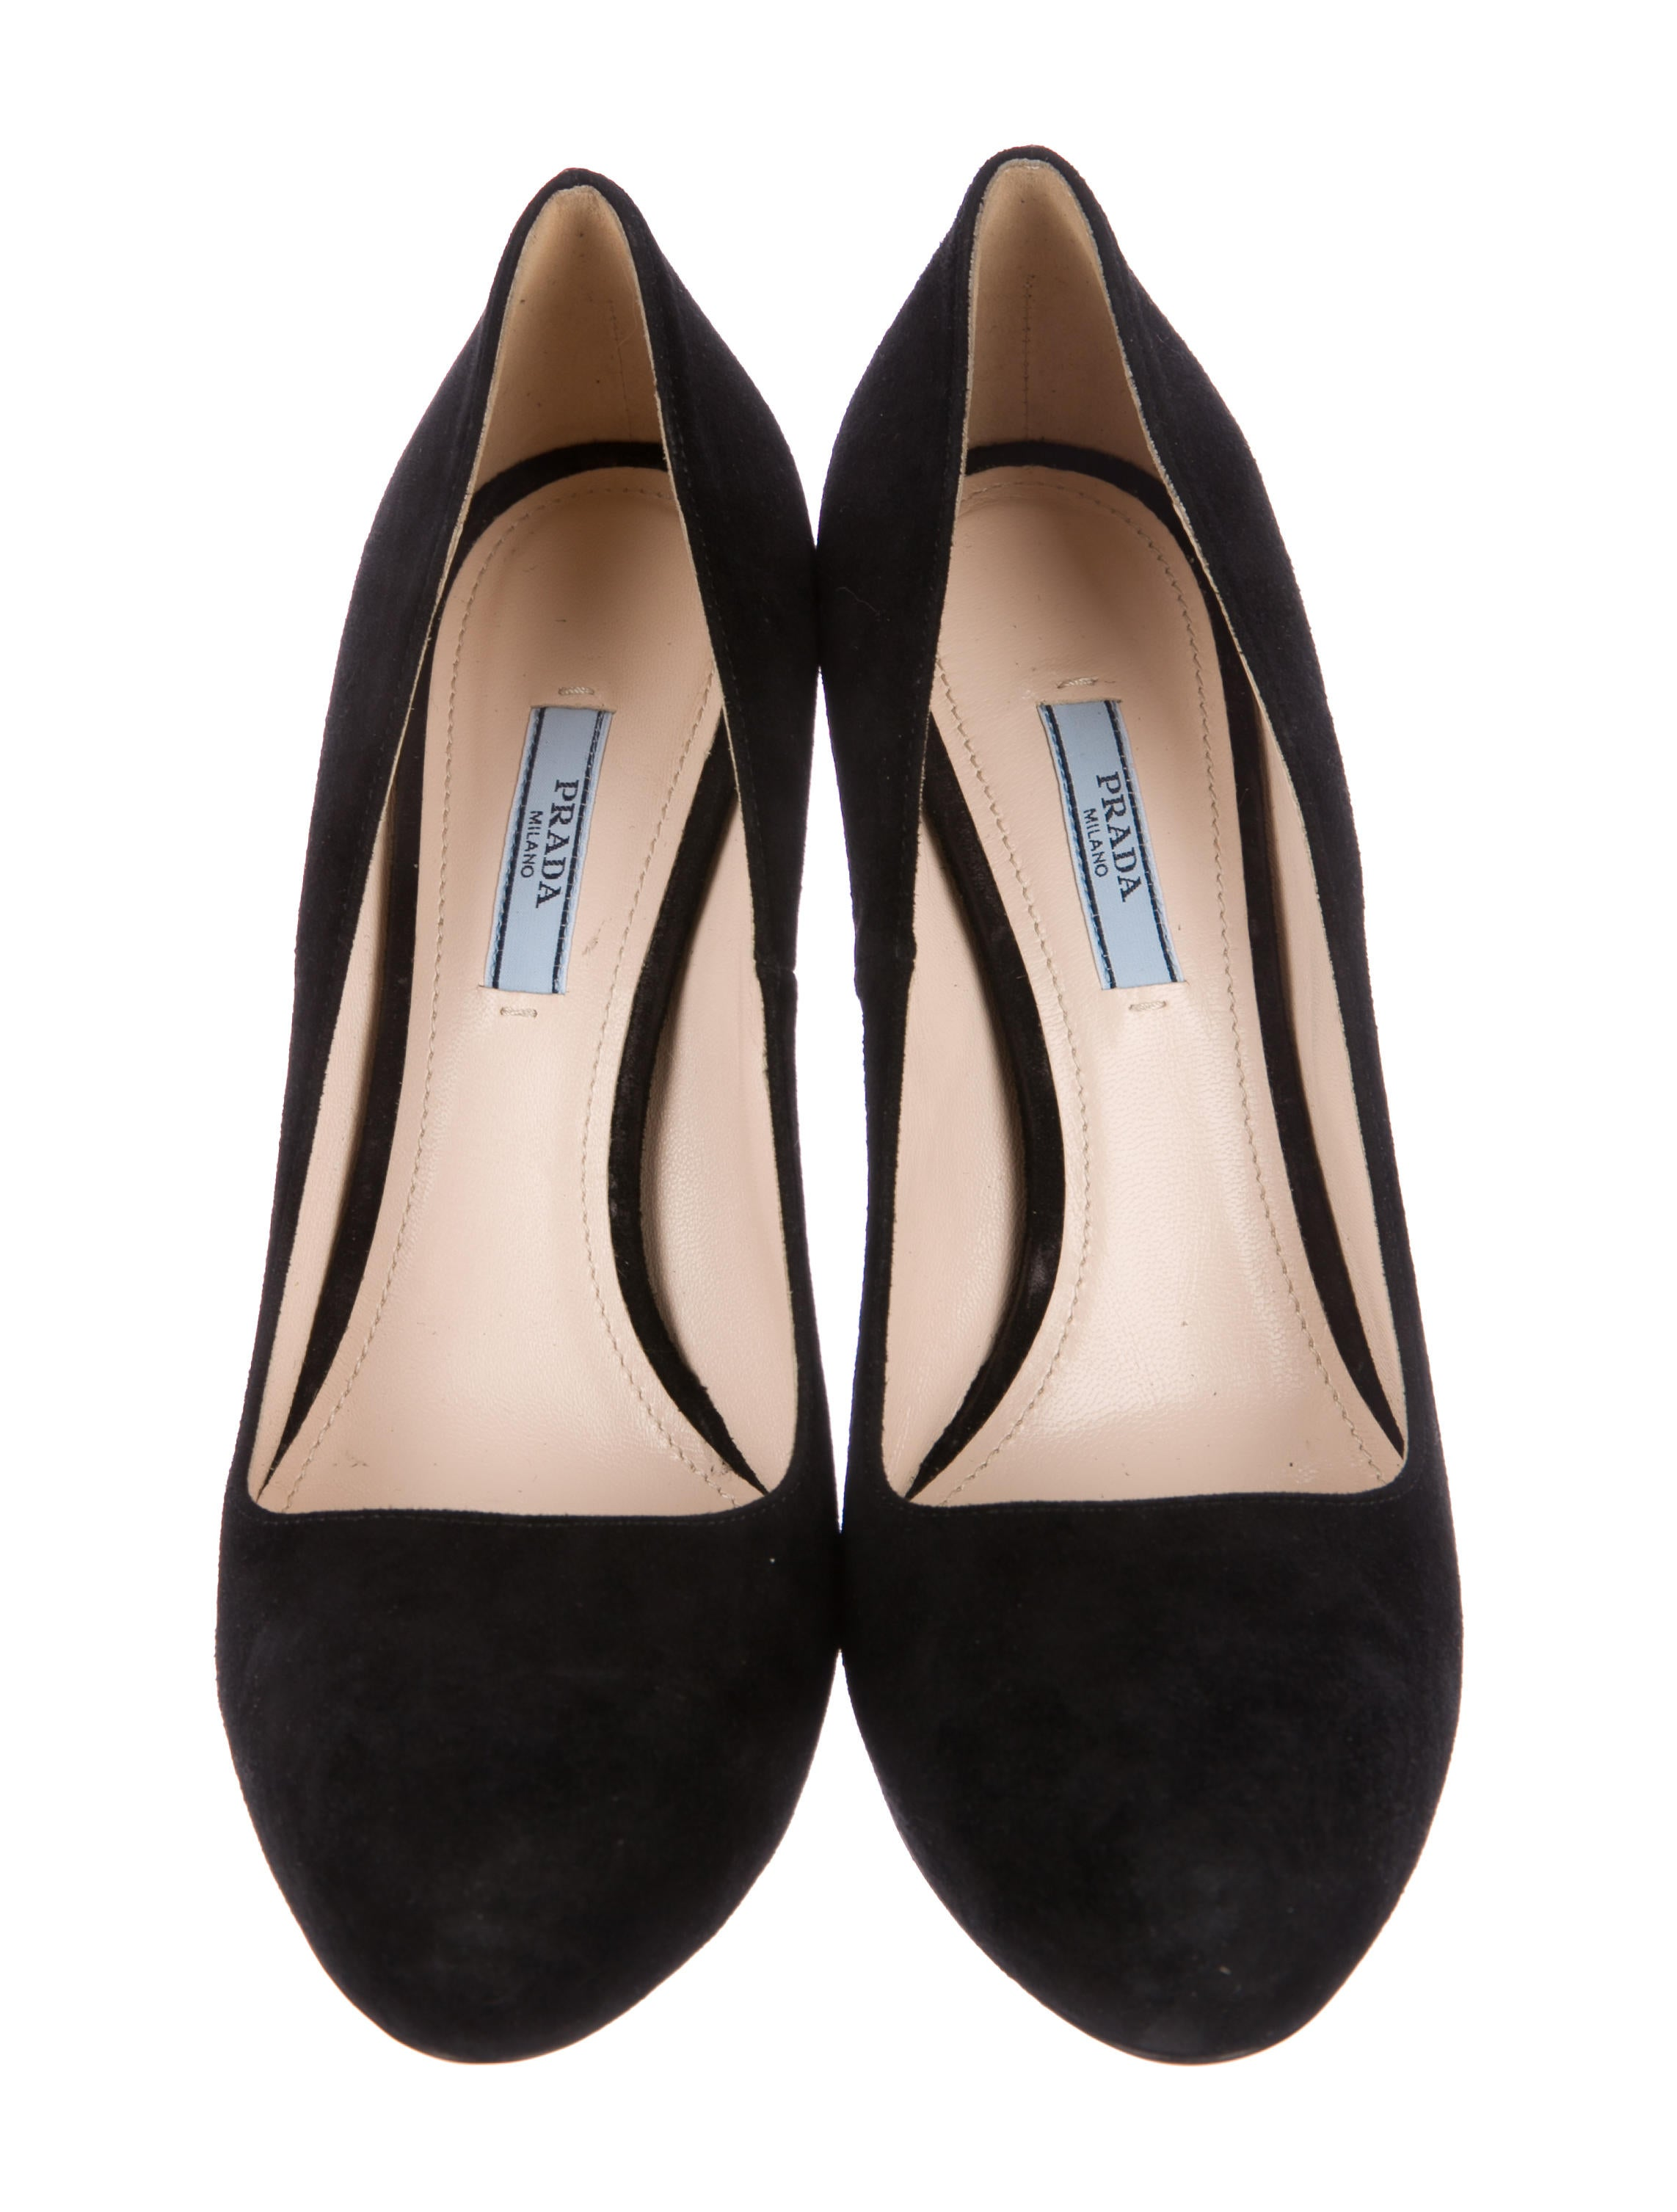 buy cheap perfect Prada Suede Round-Toe Oxfords clearance original free shipping exclusive clearance pre order m4WVf4yM